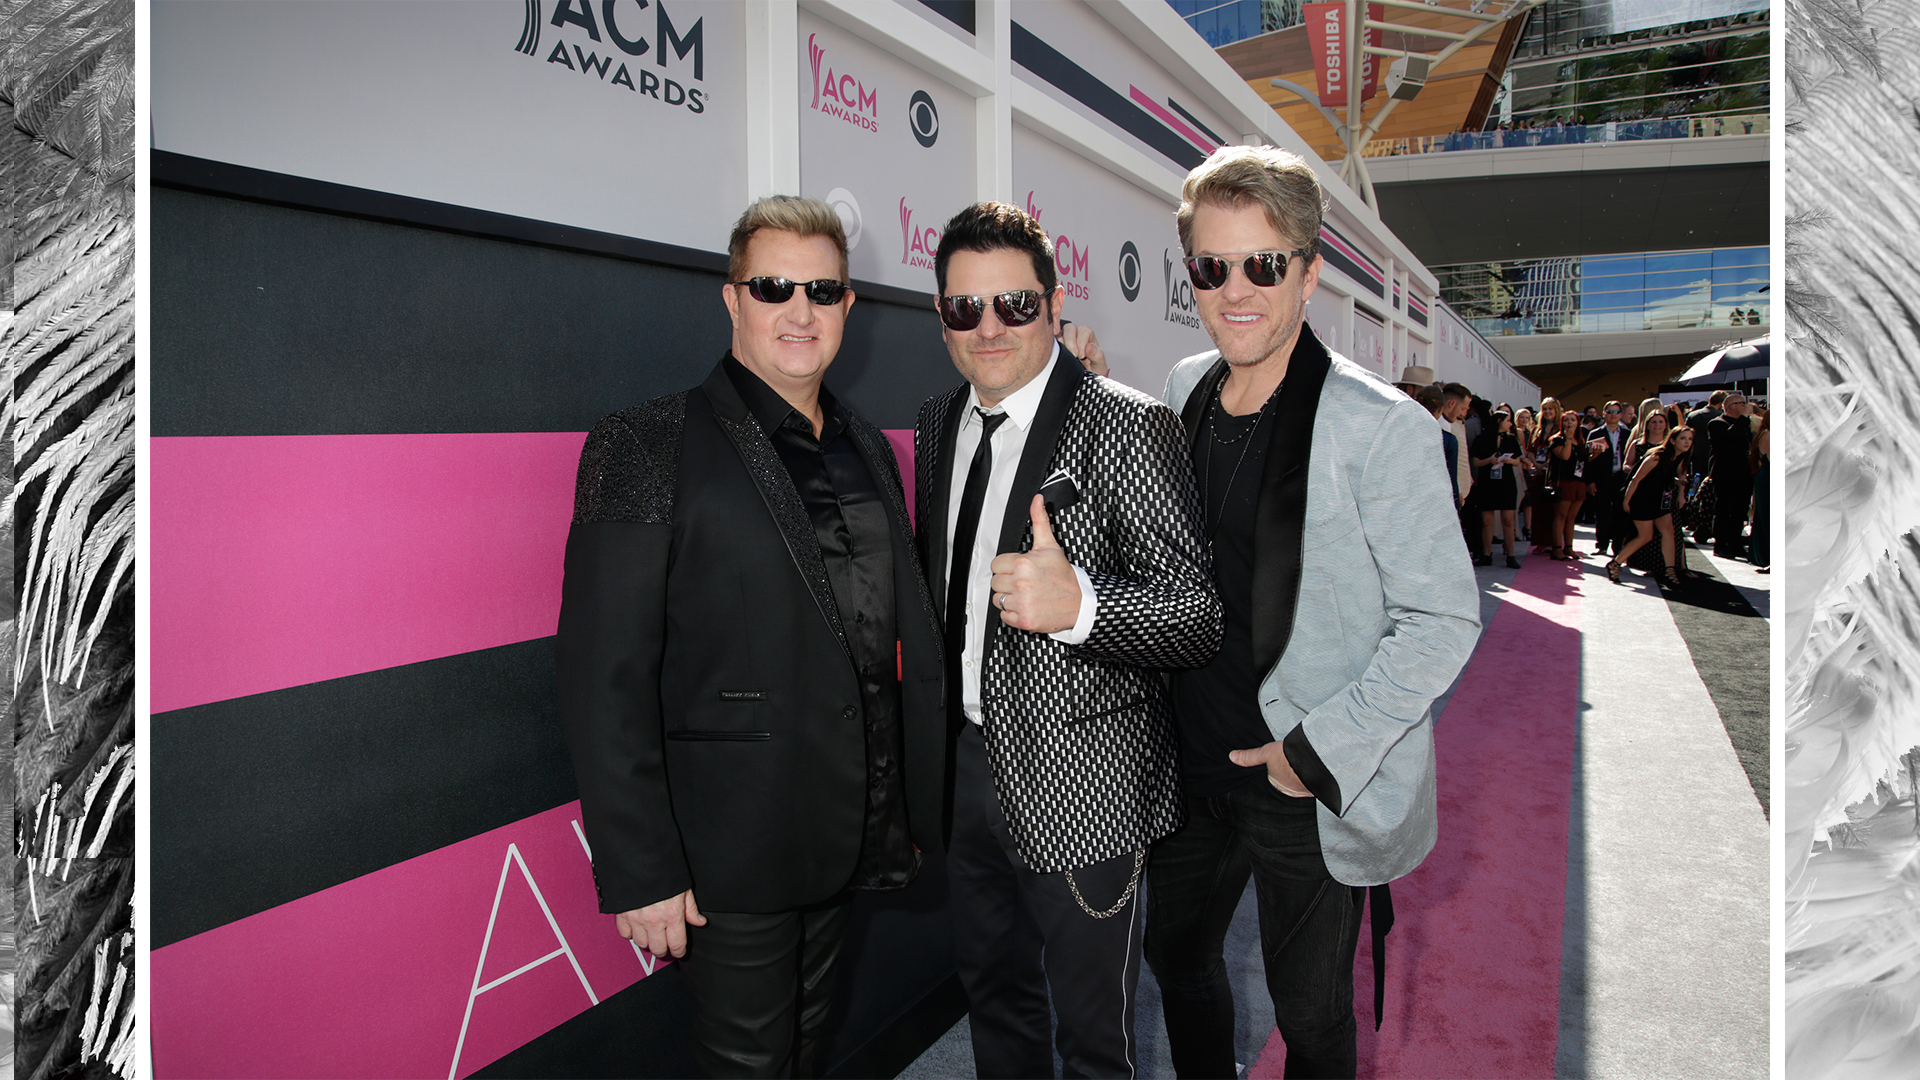 Rascal Flatts give the 52nd ACM Awards a thumbs up.